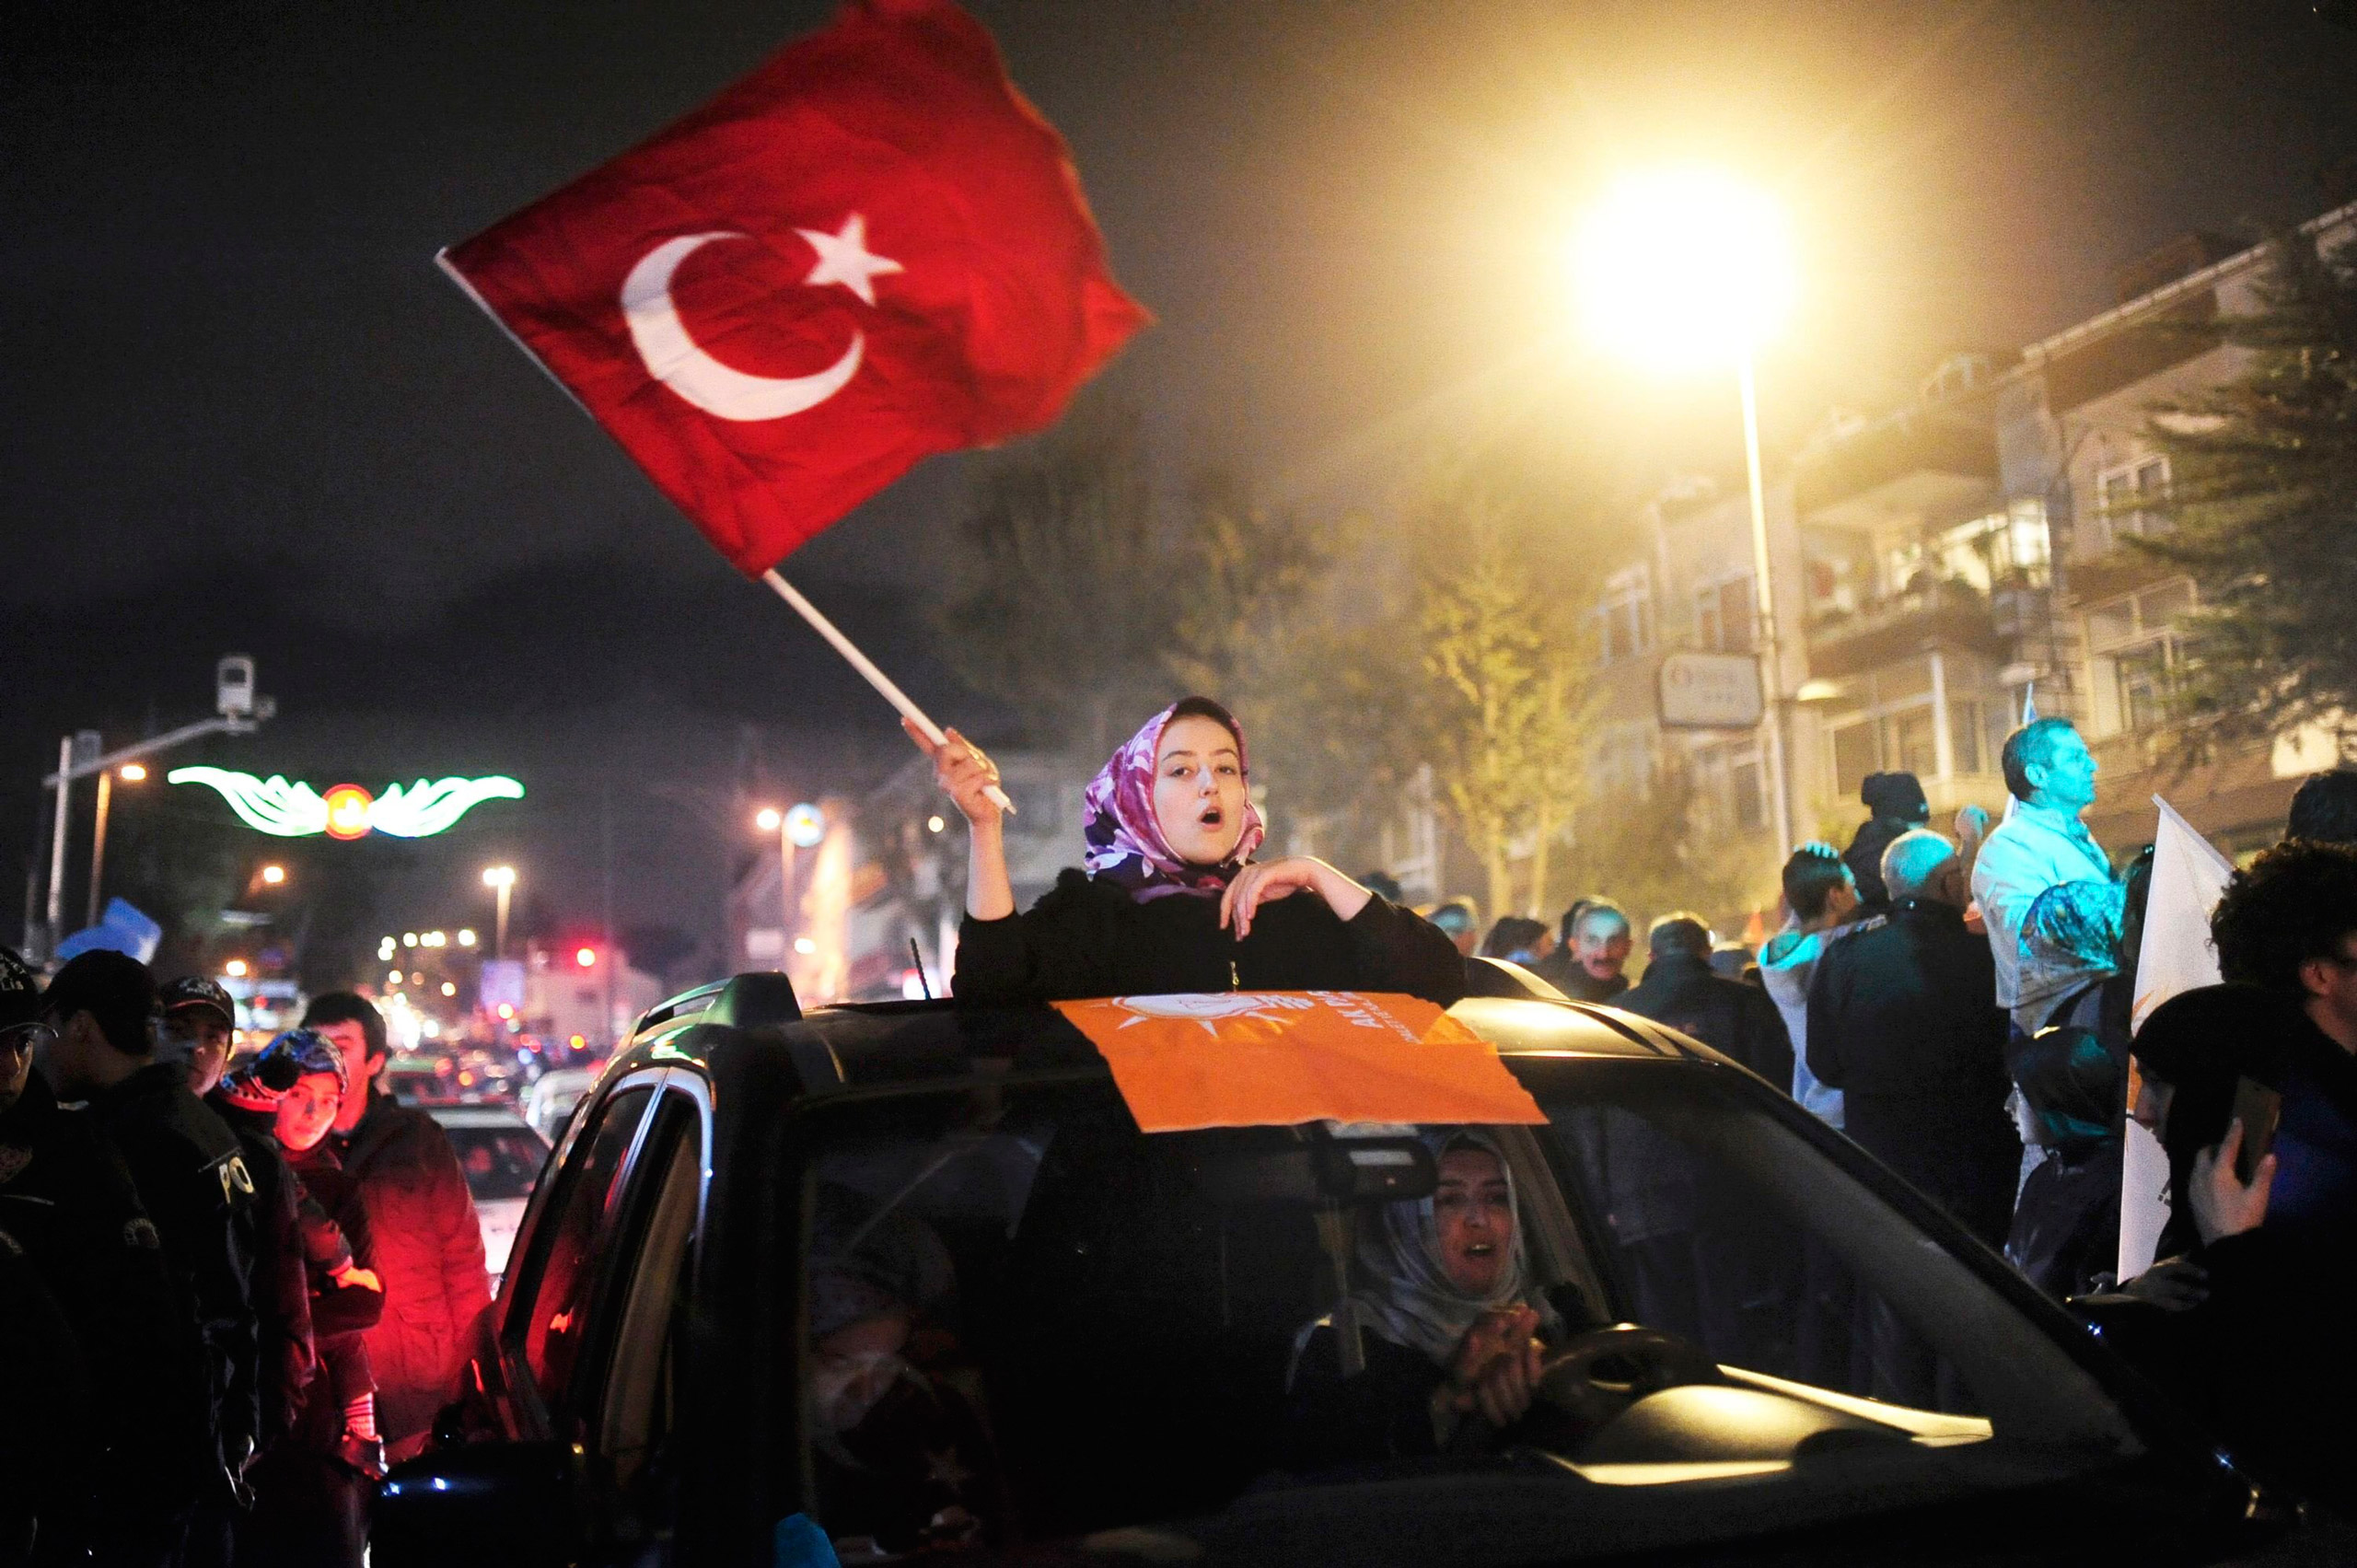 Supporters of the Justice and Development Party (AKP) gather near the residence of Turkish President Recep Tayyip Erdogan to celebrate their party's election victory in Istanbul on Nov. 1, 2015.